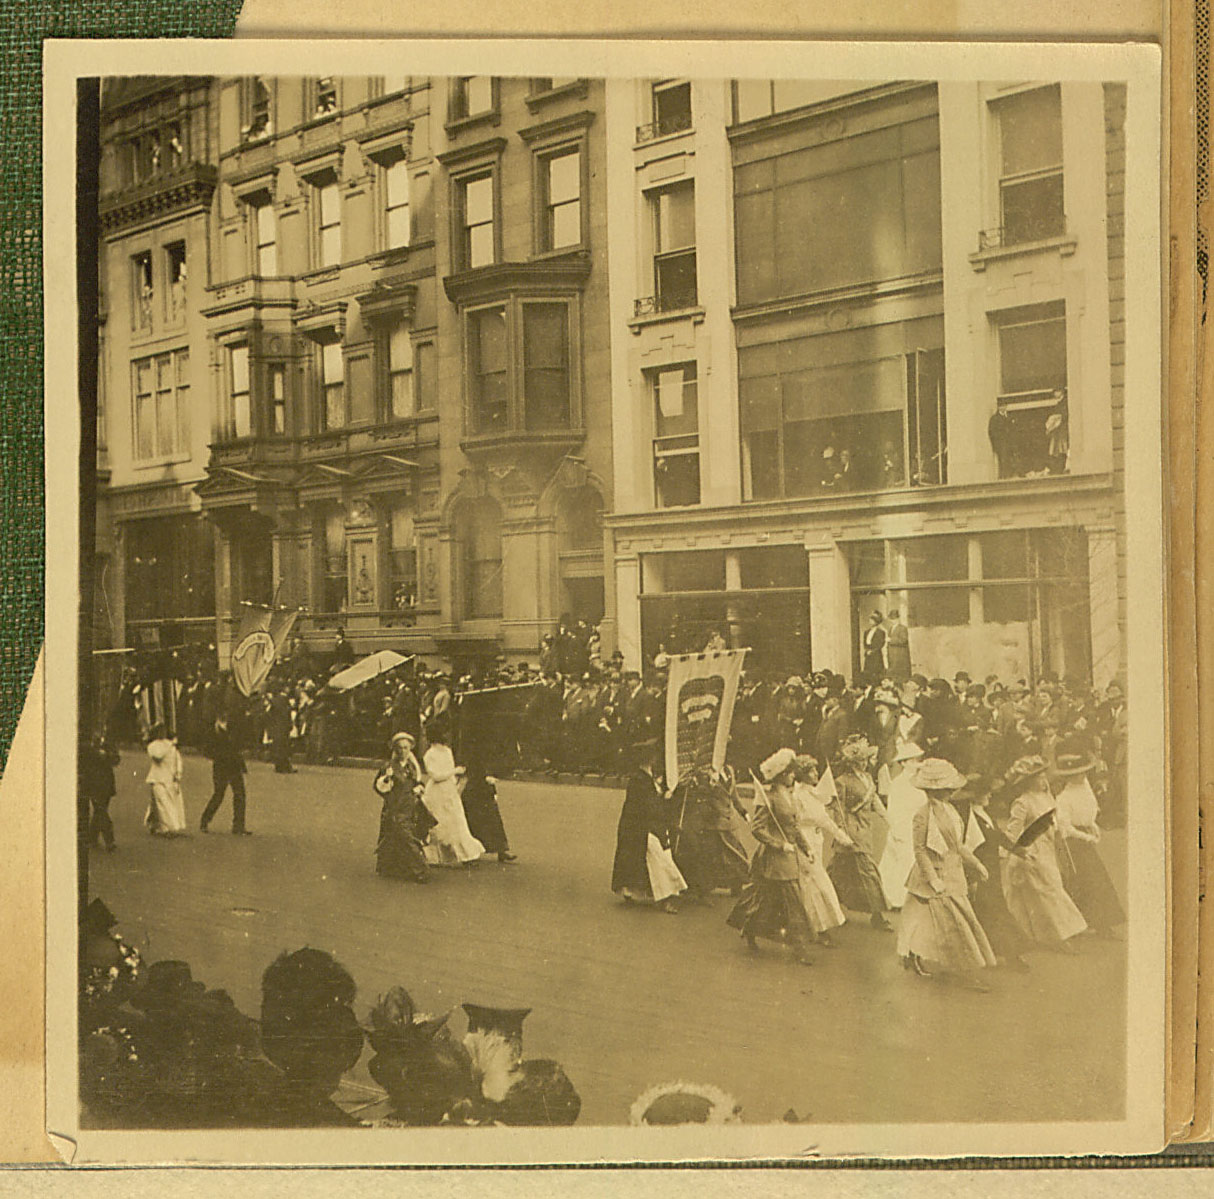 Photo of suffragist parade